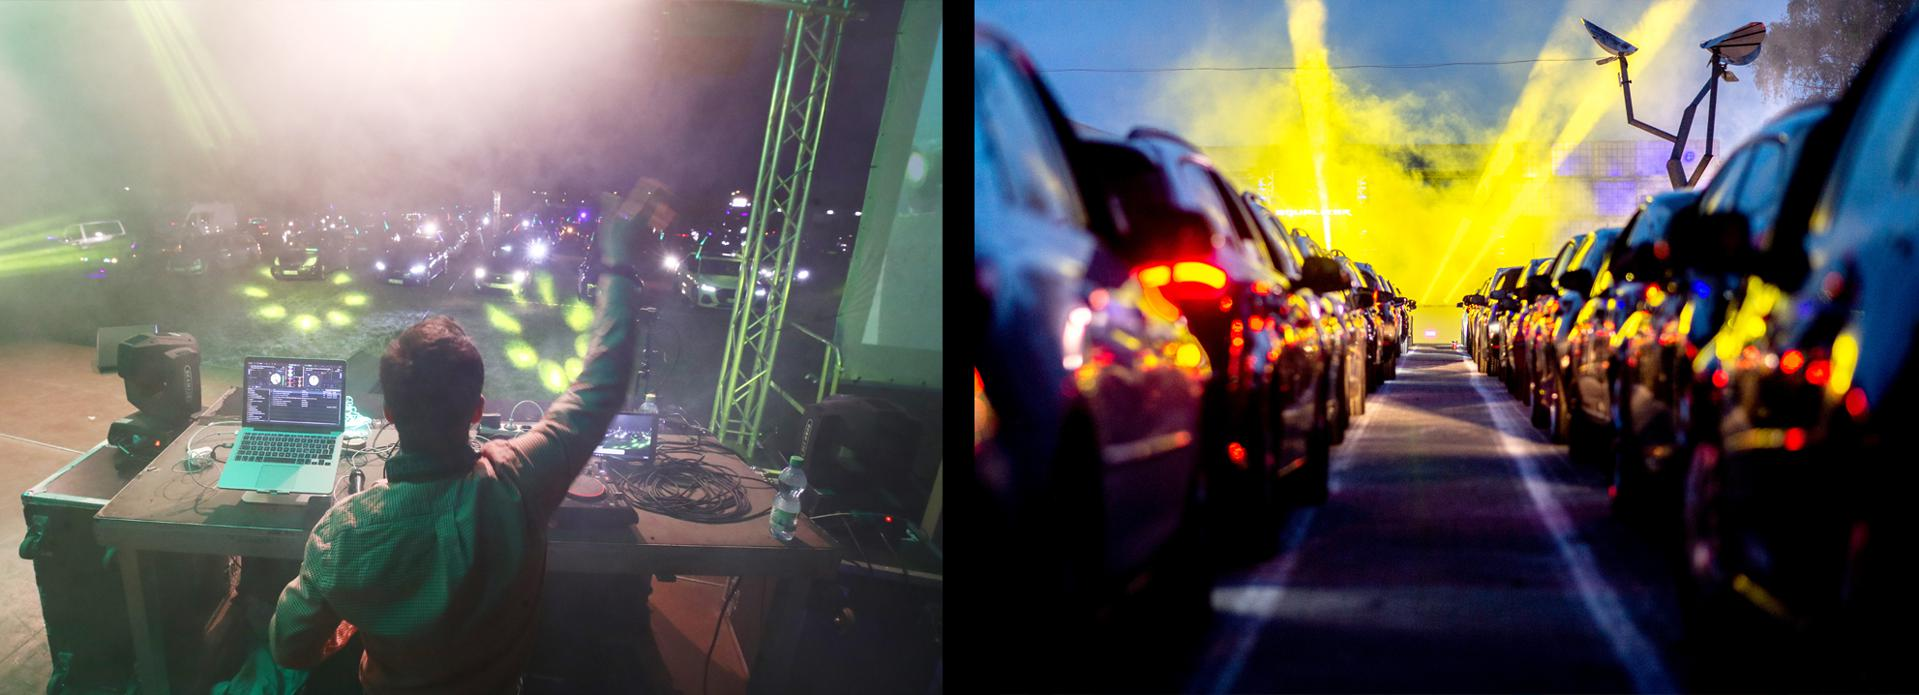 Left: Lower Saxony, Schüttorf: Guests park their cars during a car disco in the parking lot of the disco ″Index″. This large capacity discotheque in Grafschaft Bentheim is offering a car disco for the second time. In 250 cars a total of 500 guests can participate. Right: DJ Bonsai is on stage at a car disco. Due to the Corona pandemic, major events are still not possible. In search of alternatives the Autodisco was brought into being. Up to 250 cars have space on the premises and can celebrate until 1 am.